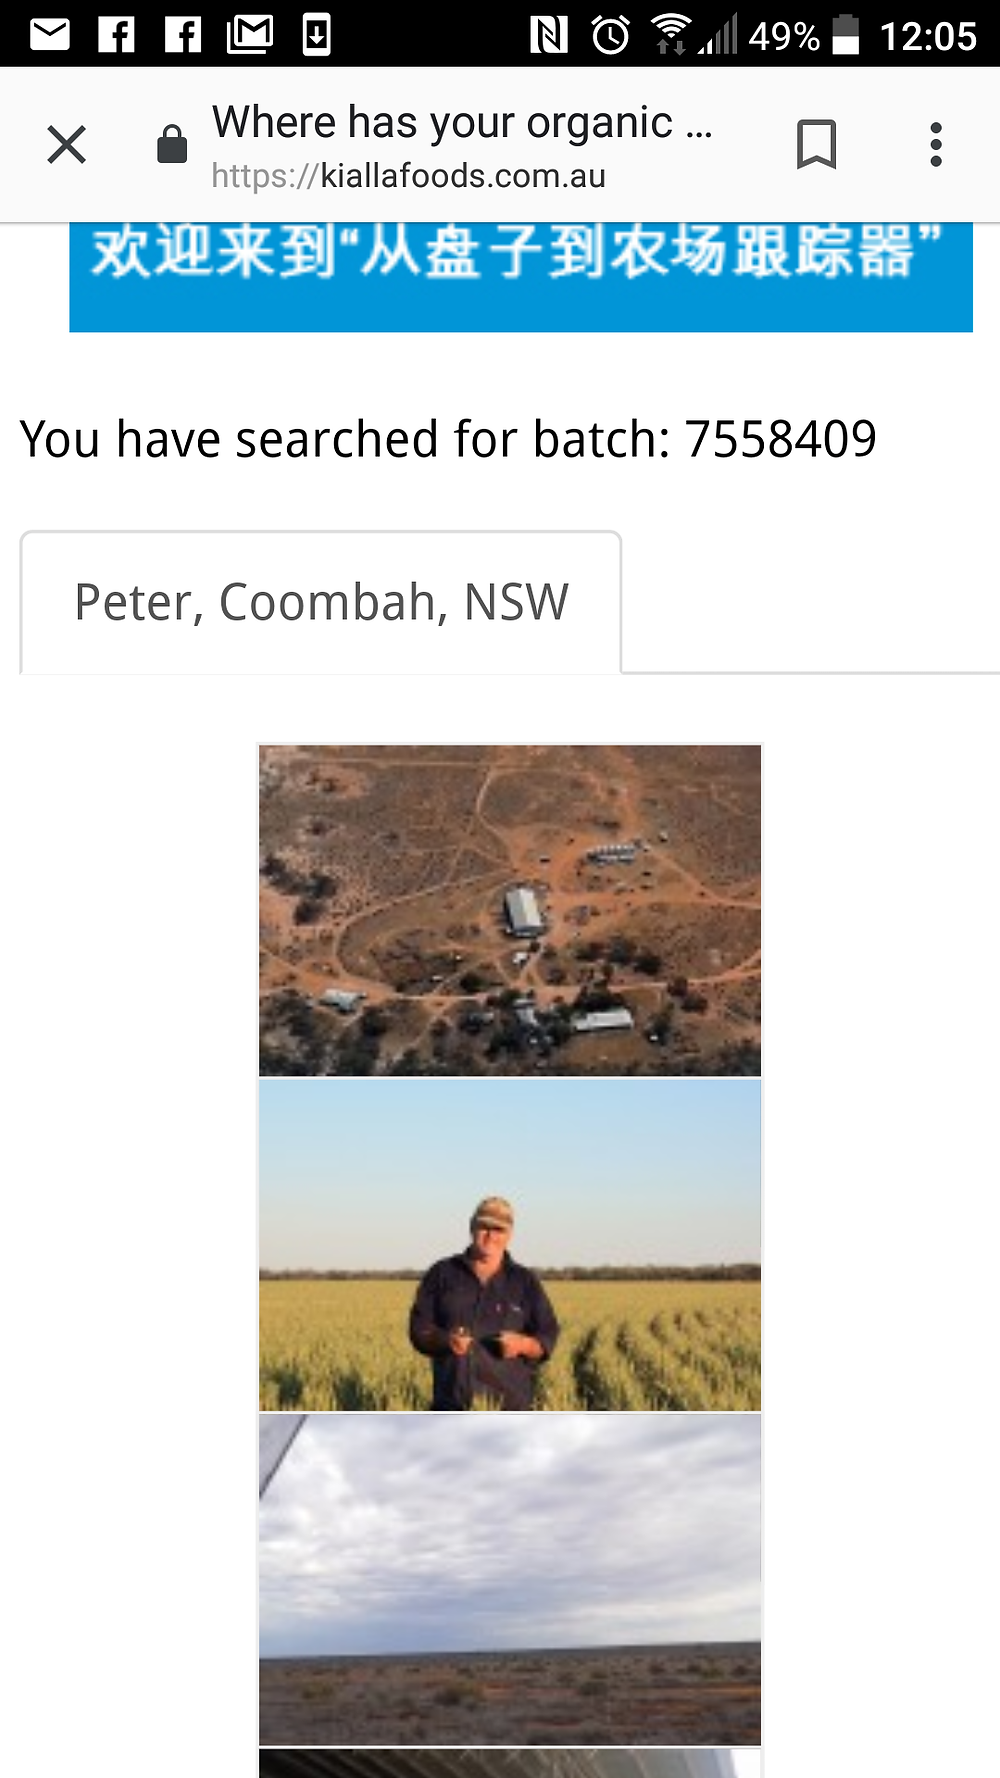 My Spelt came from Peter in Coombah, NSW